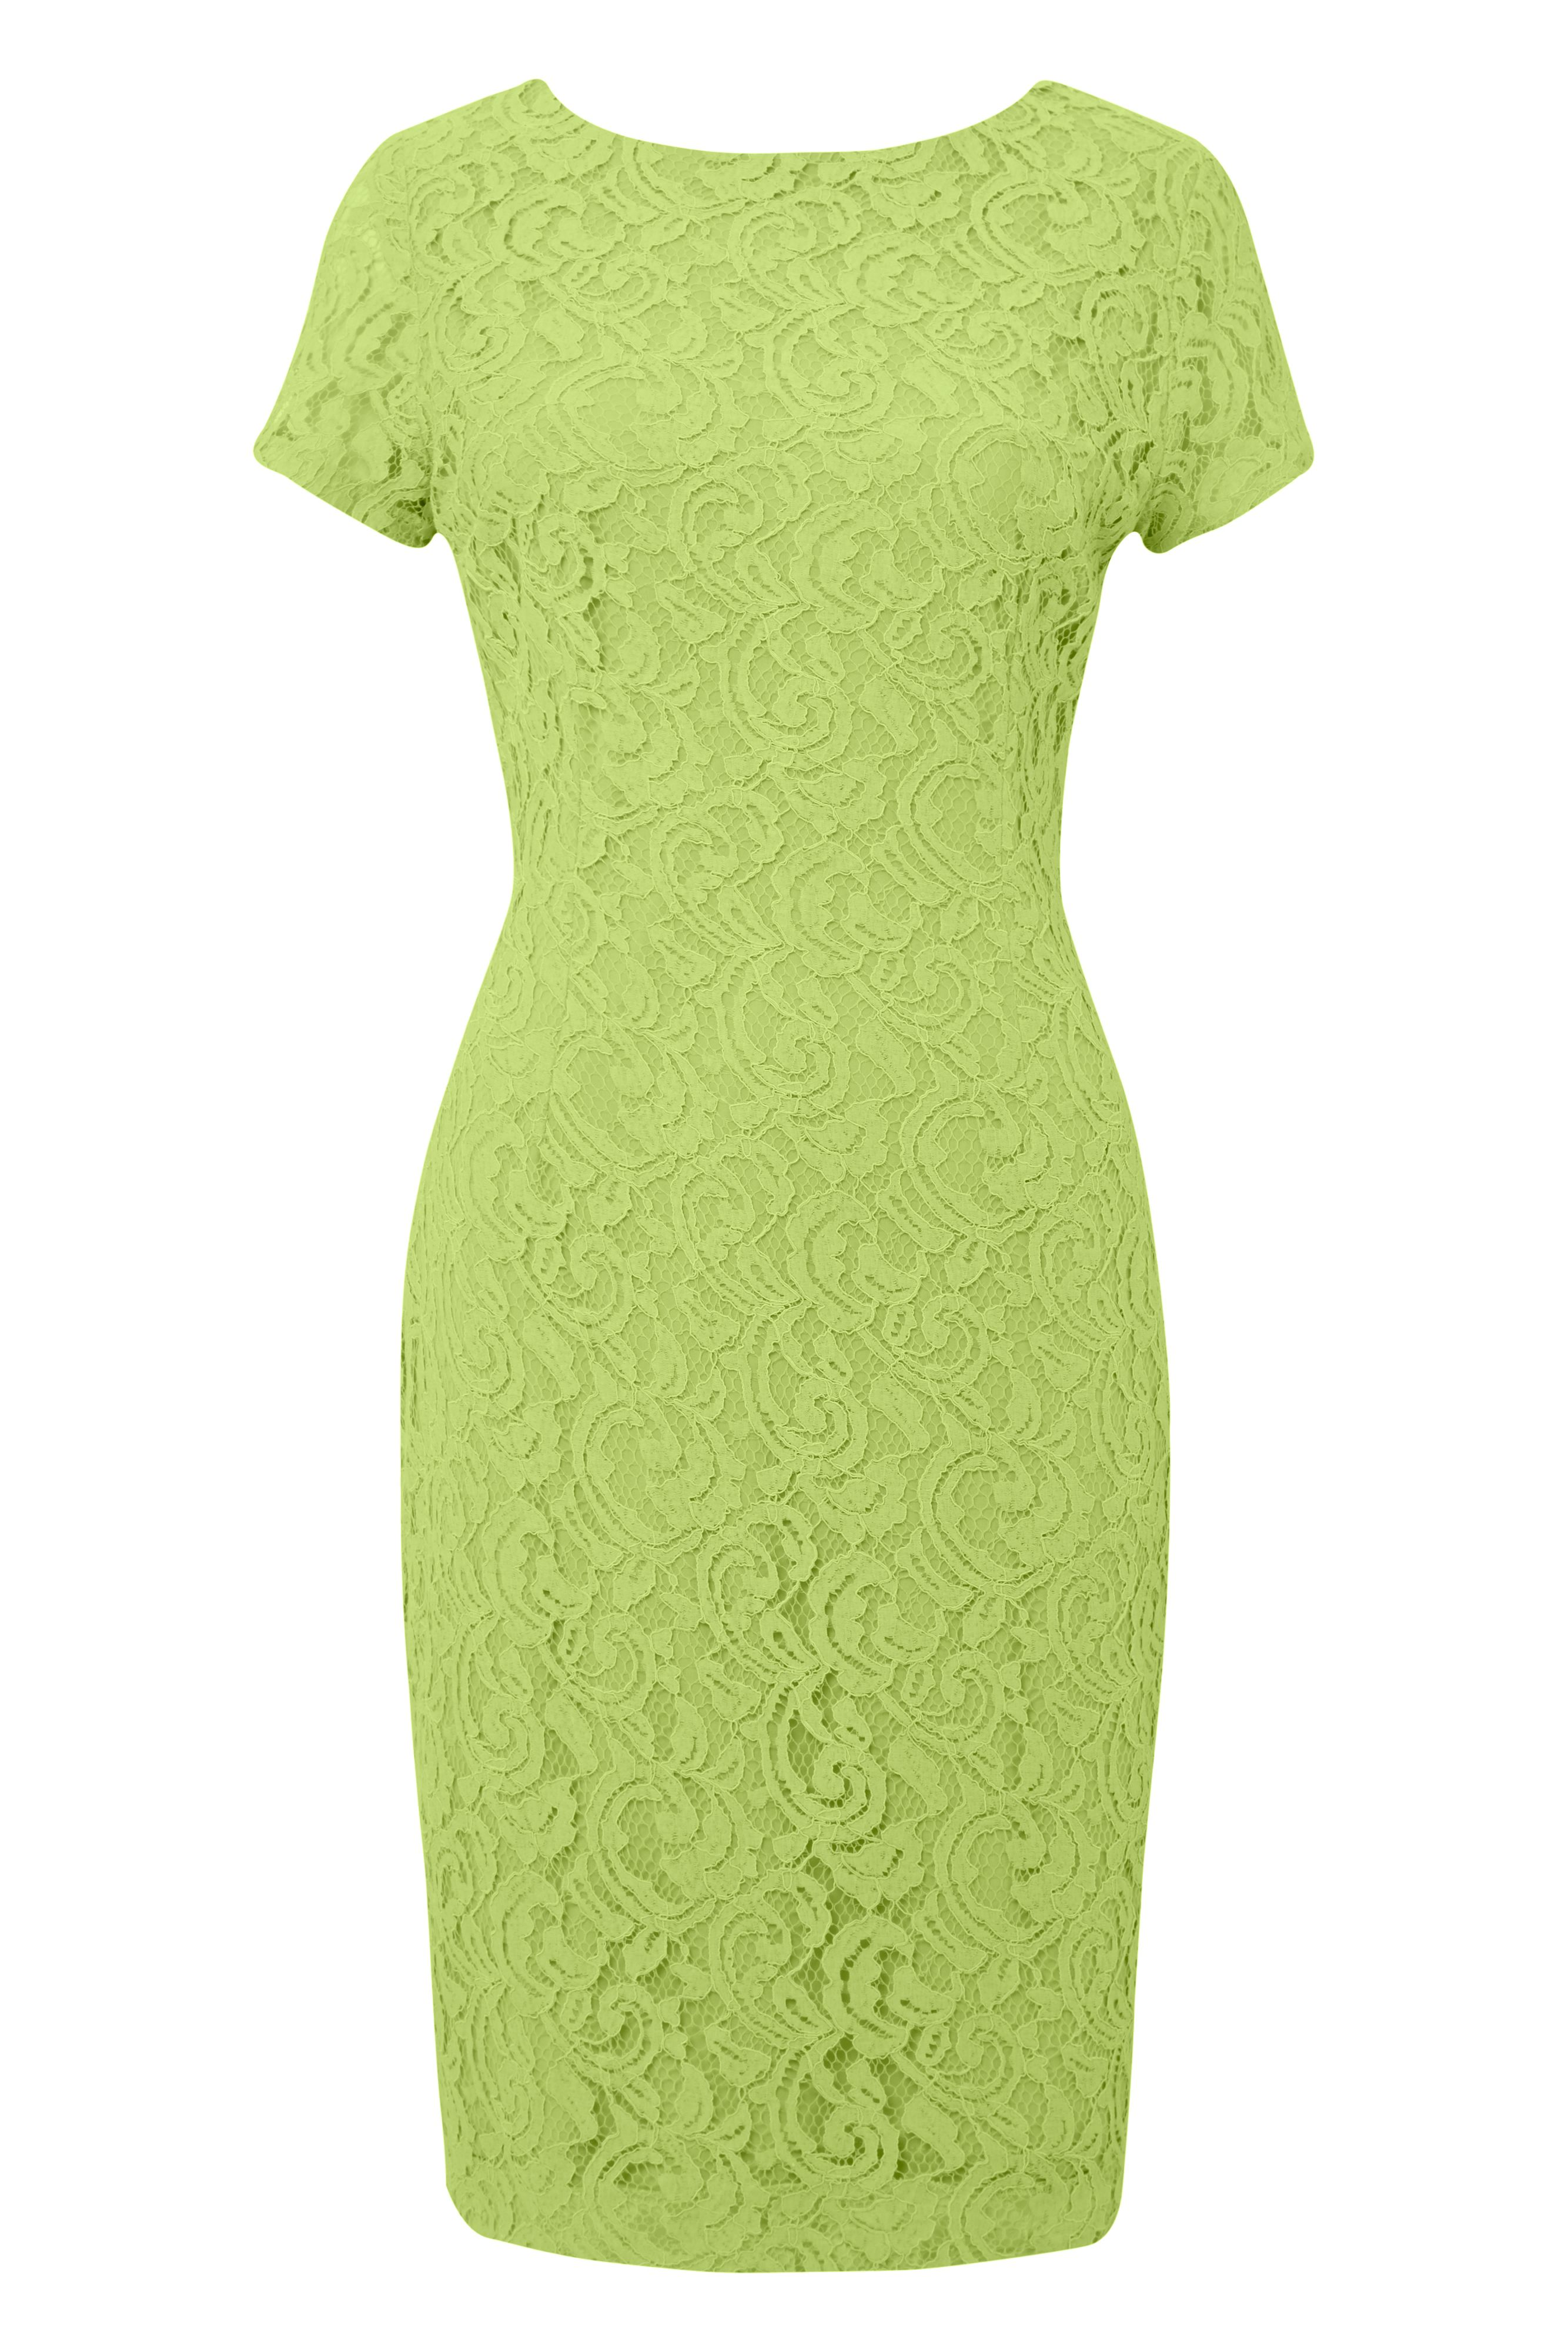 Roman Originals Lace V Back Dress, Green